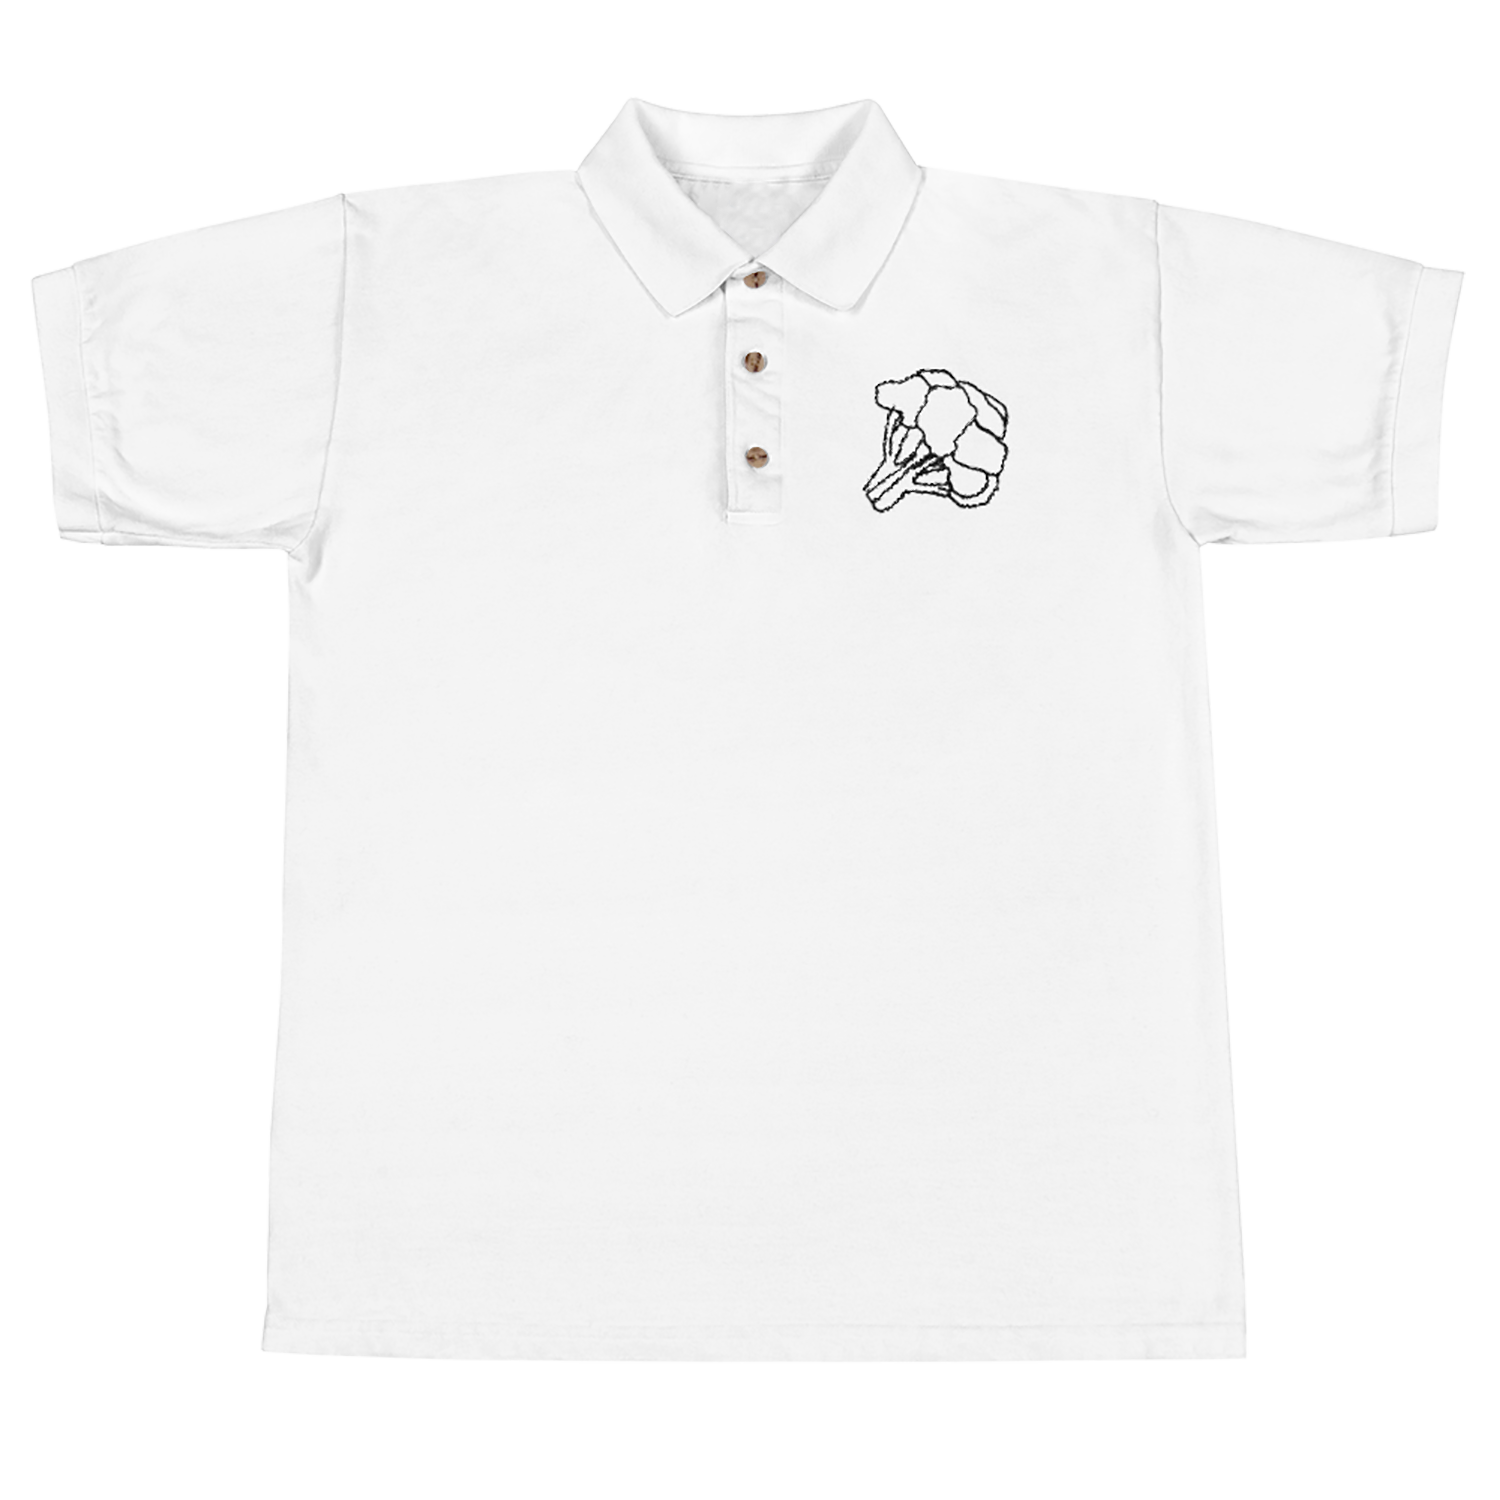 Polo drawing shirt line. Broccoli embroidered true vision